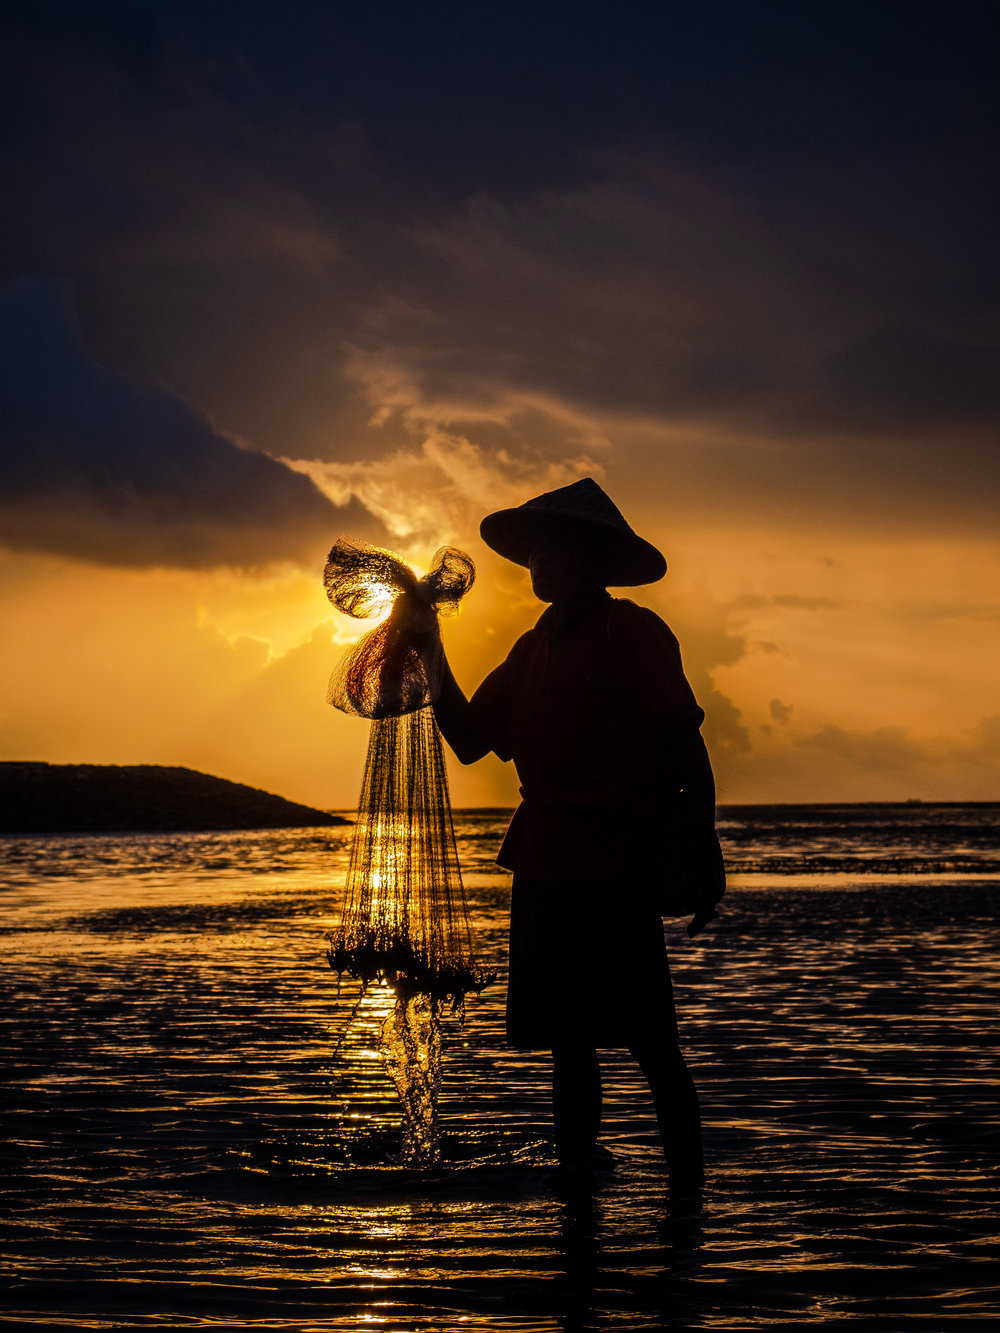 Musings by the Glass - Bali Photo Essay - Fisherman